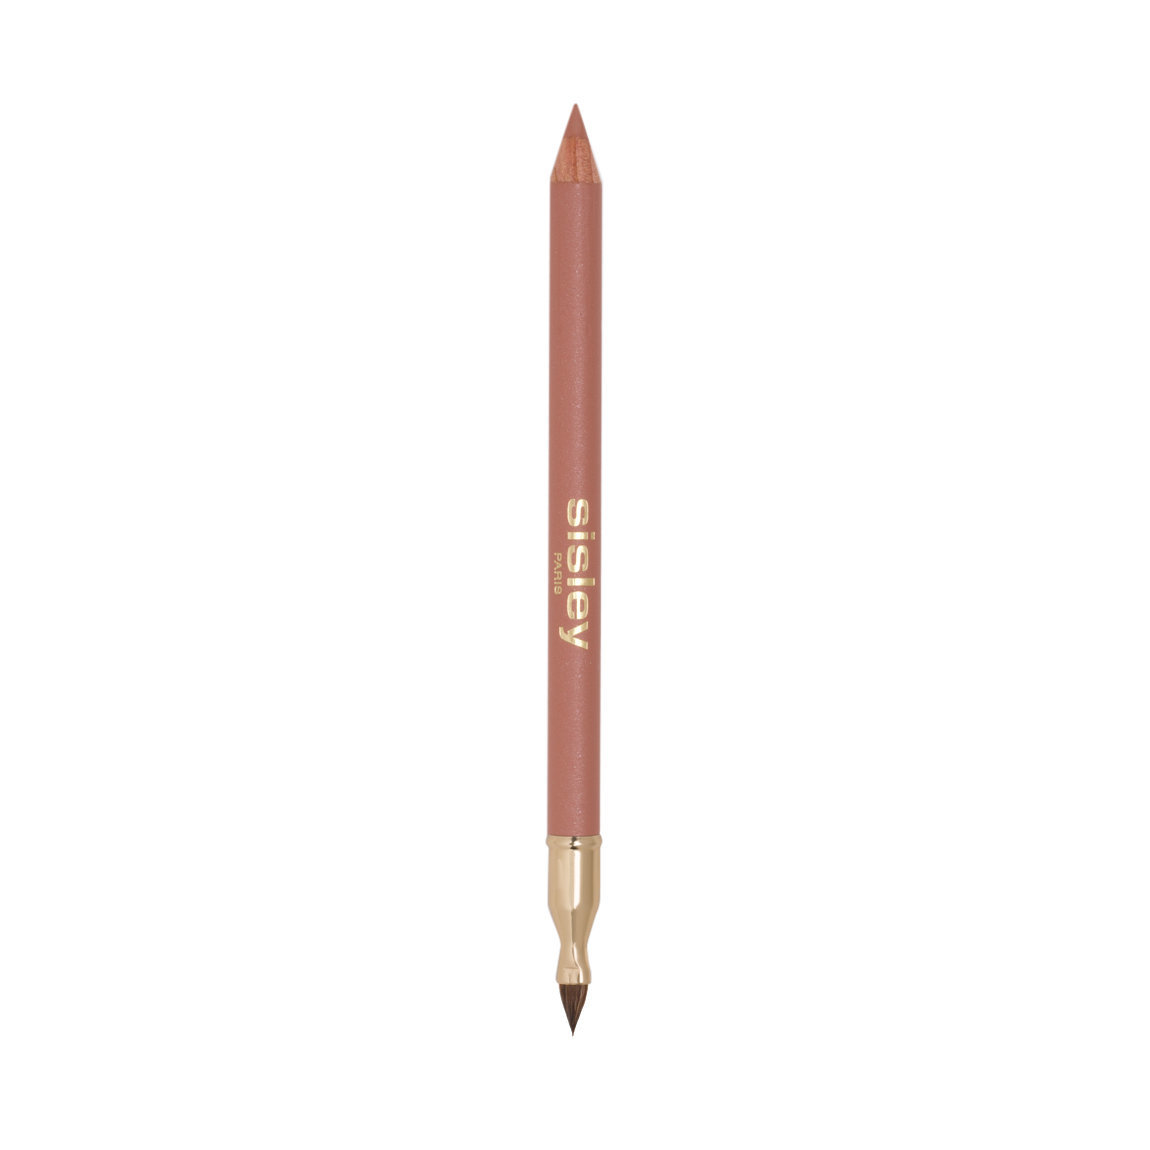 Sisley-Paris Phyto-Lèvres Perfect Lipliner 1 Nude alternative view 1.